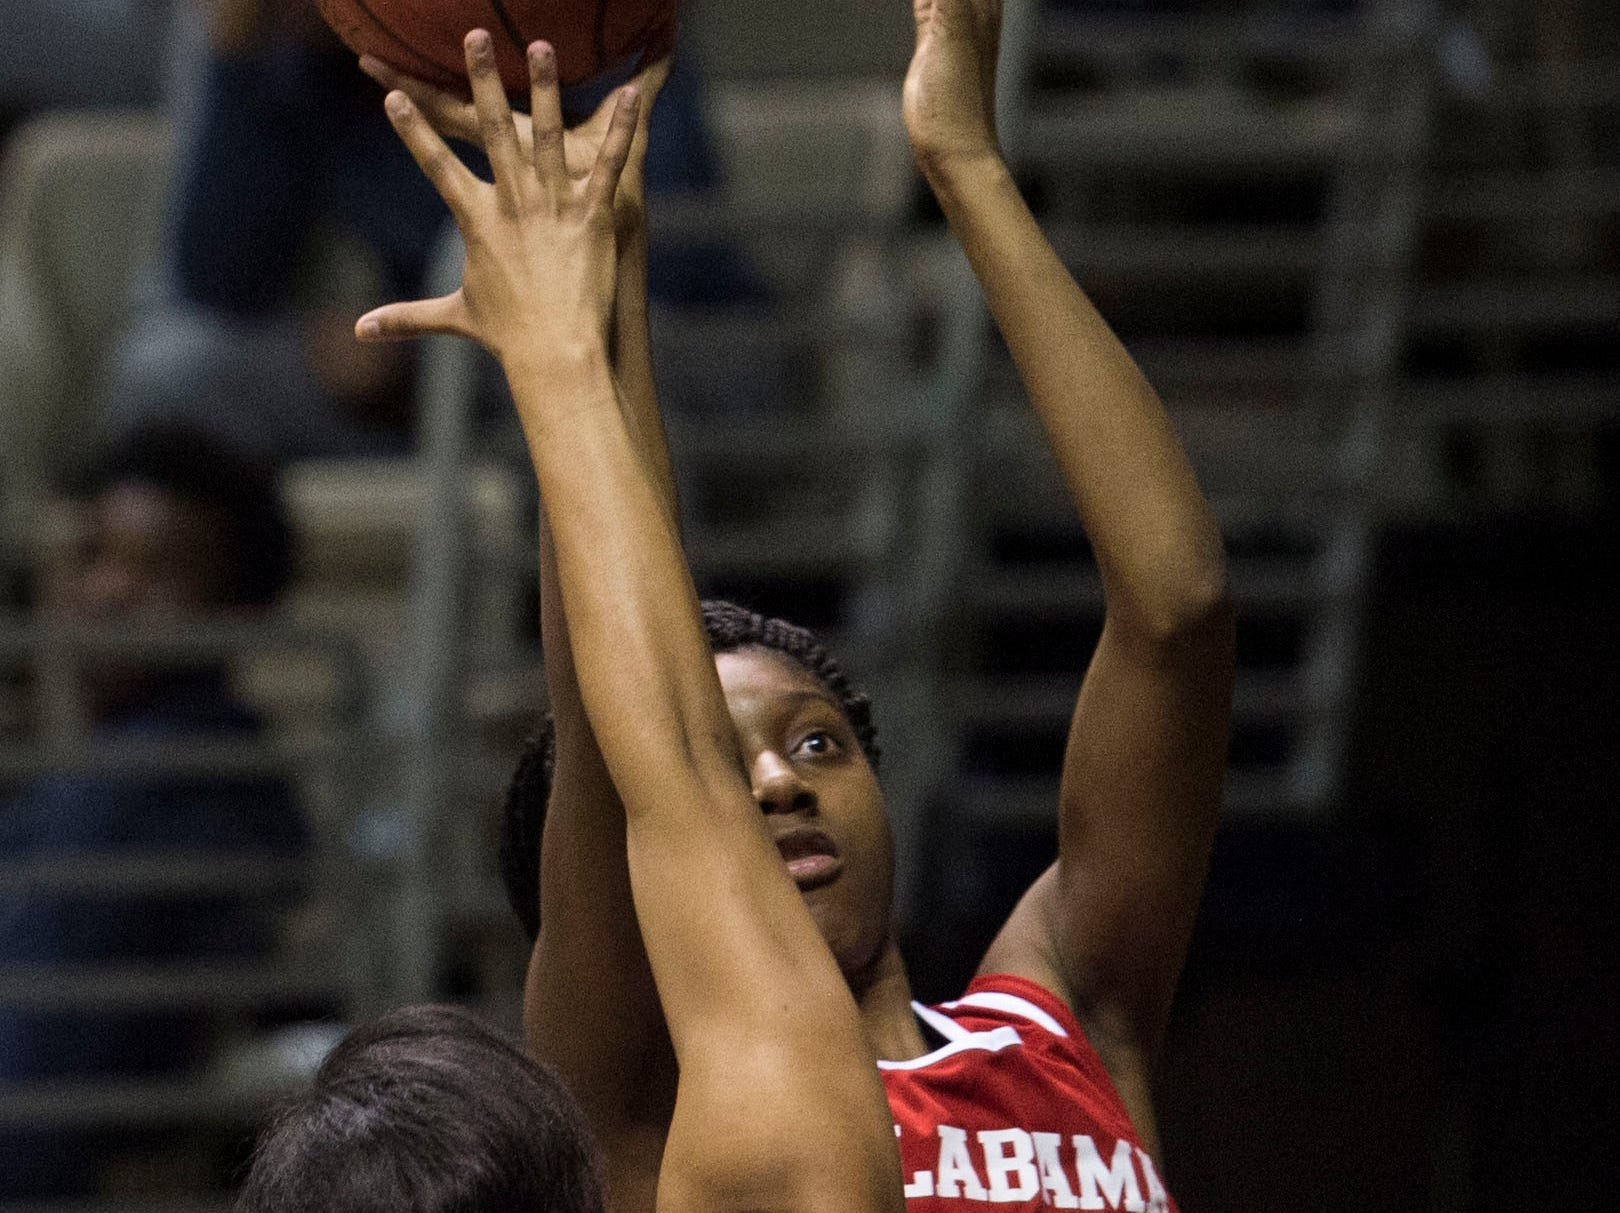 Alabama's Taylor Henderson (23) goes up for a layup during the Alabama-Mississippi All-Star game at the Dunn-Oliver Acadome in Montgomery, Ala., on Friday, March 15, 2019. Alabama All-stars lead the Mississippi All-stars 48-34 at halftime.